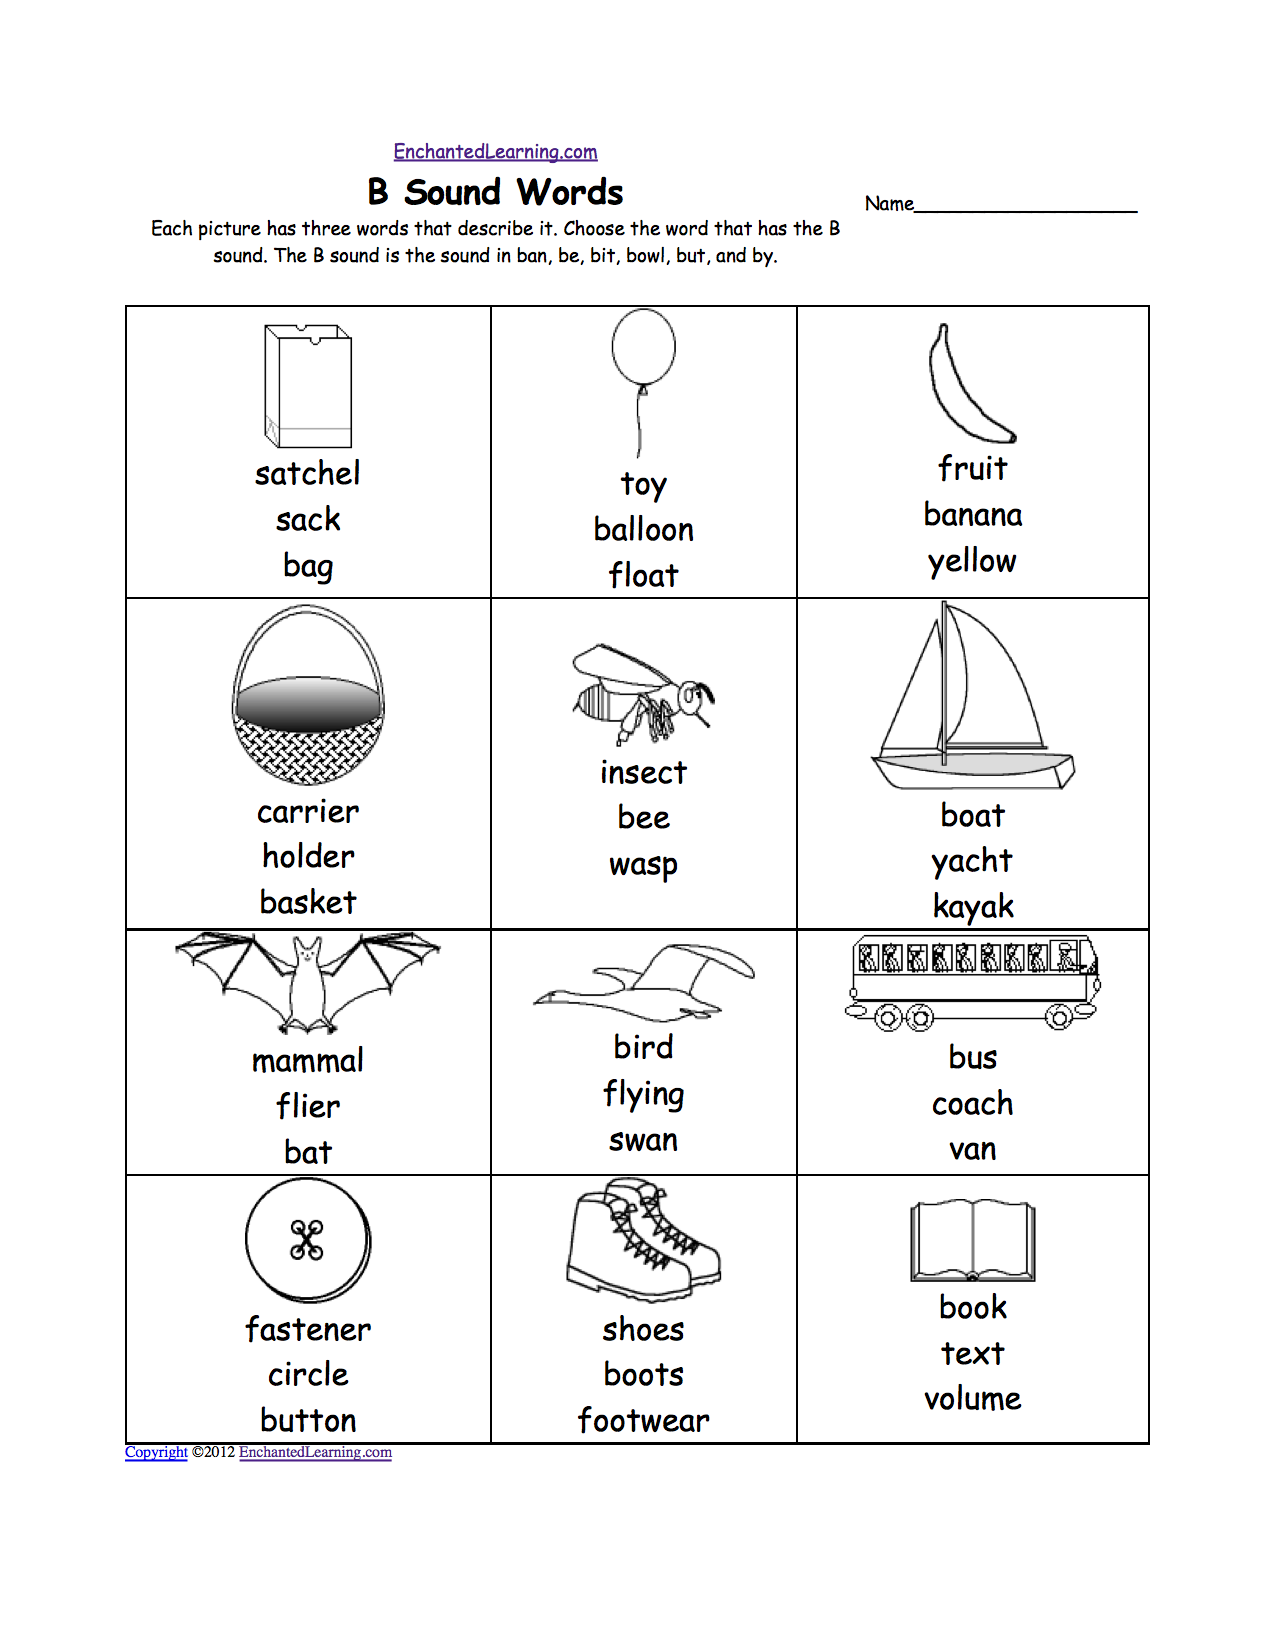 Proatmealus  Sweet Phonics Worksheets Multiple Choice Worksheets To Print  With Luxury Quotbquot Sound Phonics Worksheet Multiple Choice Each Picture Has Three Words That Describe It Choose The Word That Has A Quotbquot Sound The Quotbquot Sound Is The Sound  With Delightful Worksheets For Nd Graders Also Jobs Worksheet In Addition Active Passive Voice Worksheet And Division Worksheets Rd Grade As Well As Solving Multi Step Equations Worksheets Additionally Sig Fig Worksheet From Enchantedlearningcom With Proatmealus  Luxury Phonics Worksheets Multiple Choice Worksheets To Print  With Delightful Quotbquot Sound Phonics Worksheet Multiple Choice Each Picture Has Three Words That Describe It Choose The Word That Has A Quotbquot Sound The Quotbquot Sound Is The Sound  And Sweet Worksheets For Nd Graders Also Jobs Worksheet In Addition Active Passive Voice Worksheet From Enchantedlearningcom